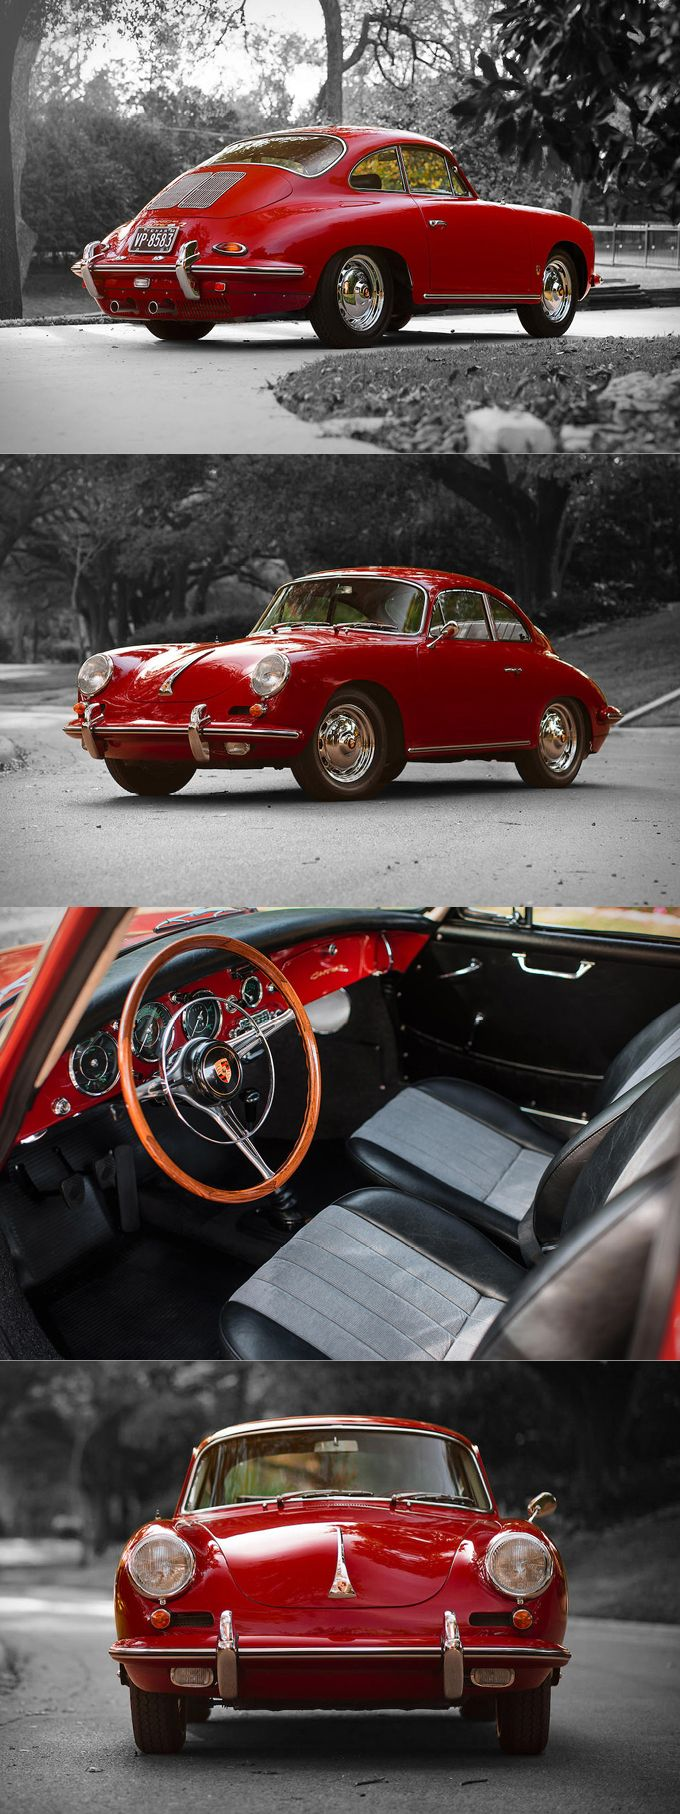 1962 Porsche 356 Carrera 2 / 310 produced / 130hp 2.0l F4 / red / Germany / 17-368